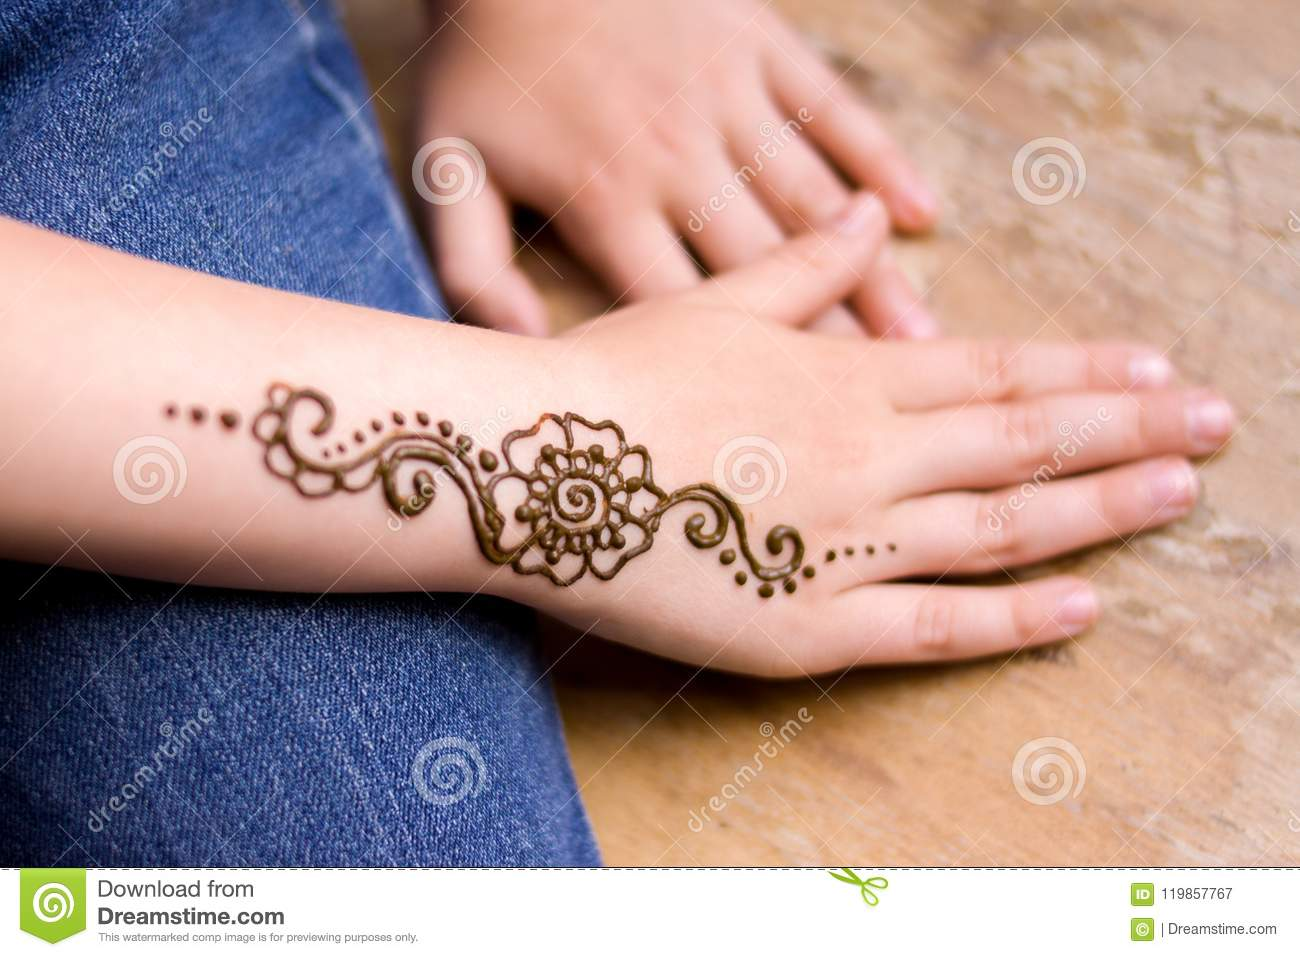 e77630d1e beauty concept - henna tattoo on small girl hand. Mehndi is traditional  Indian decorative art. Close-up, overhead view